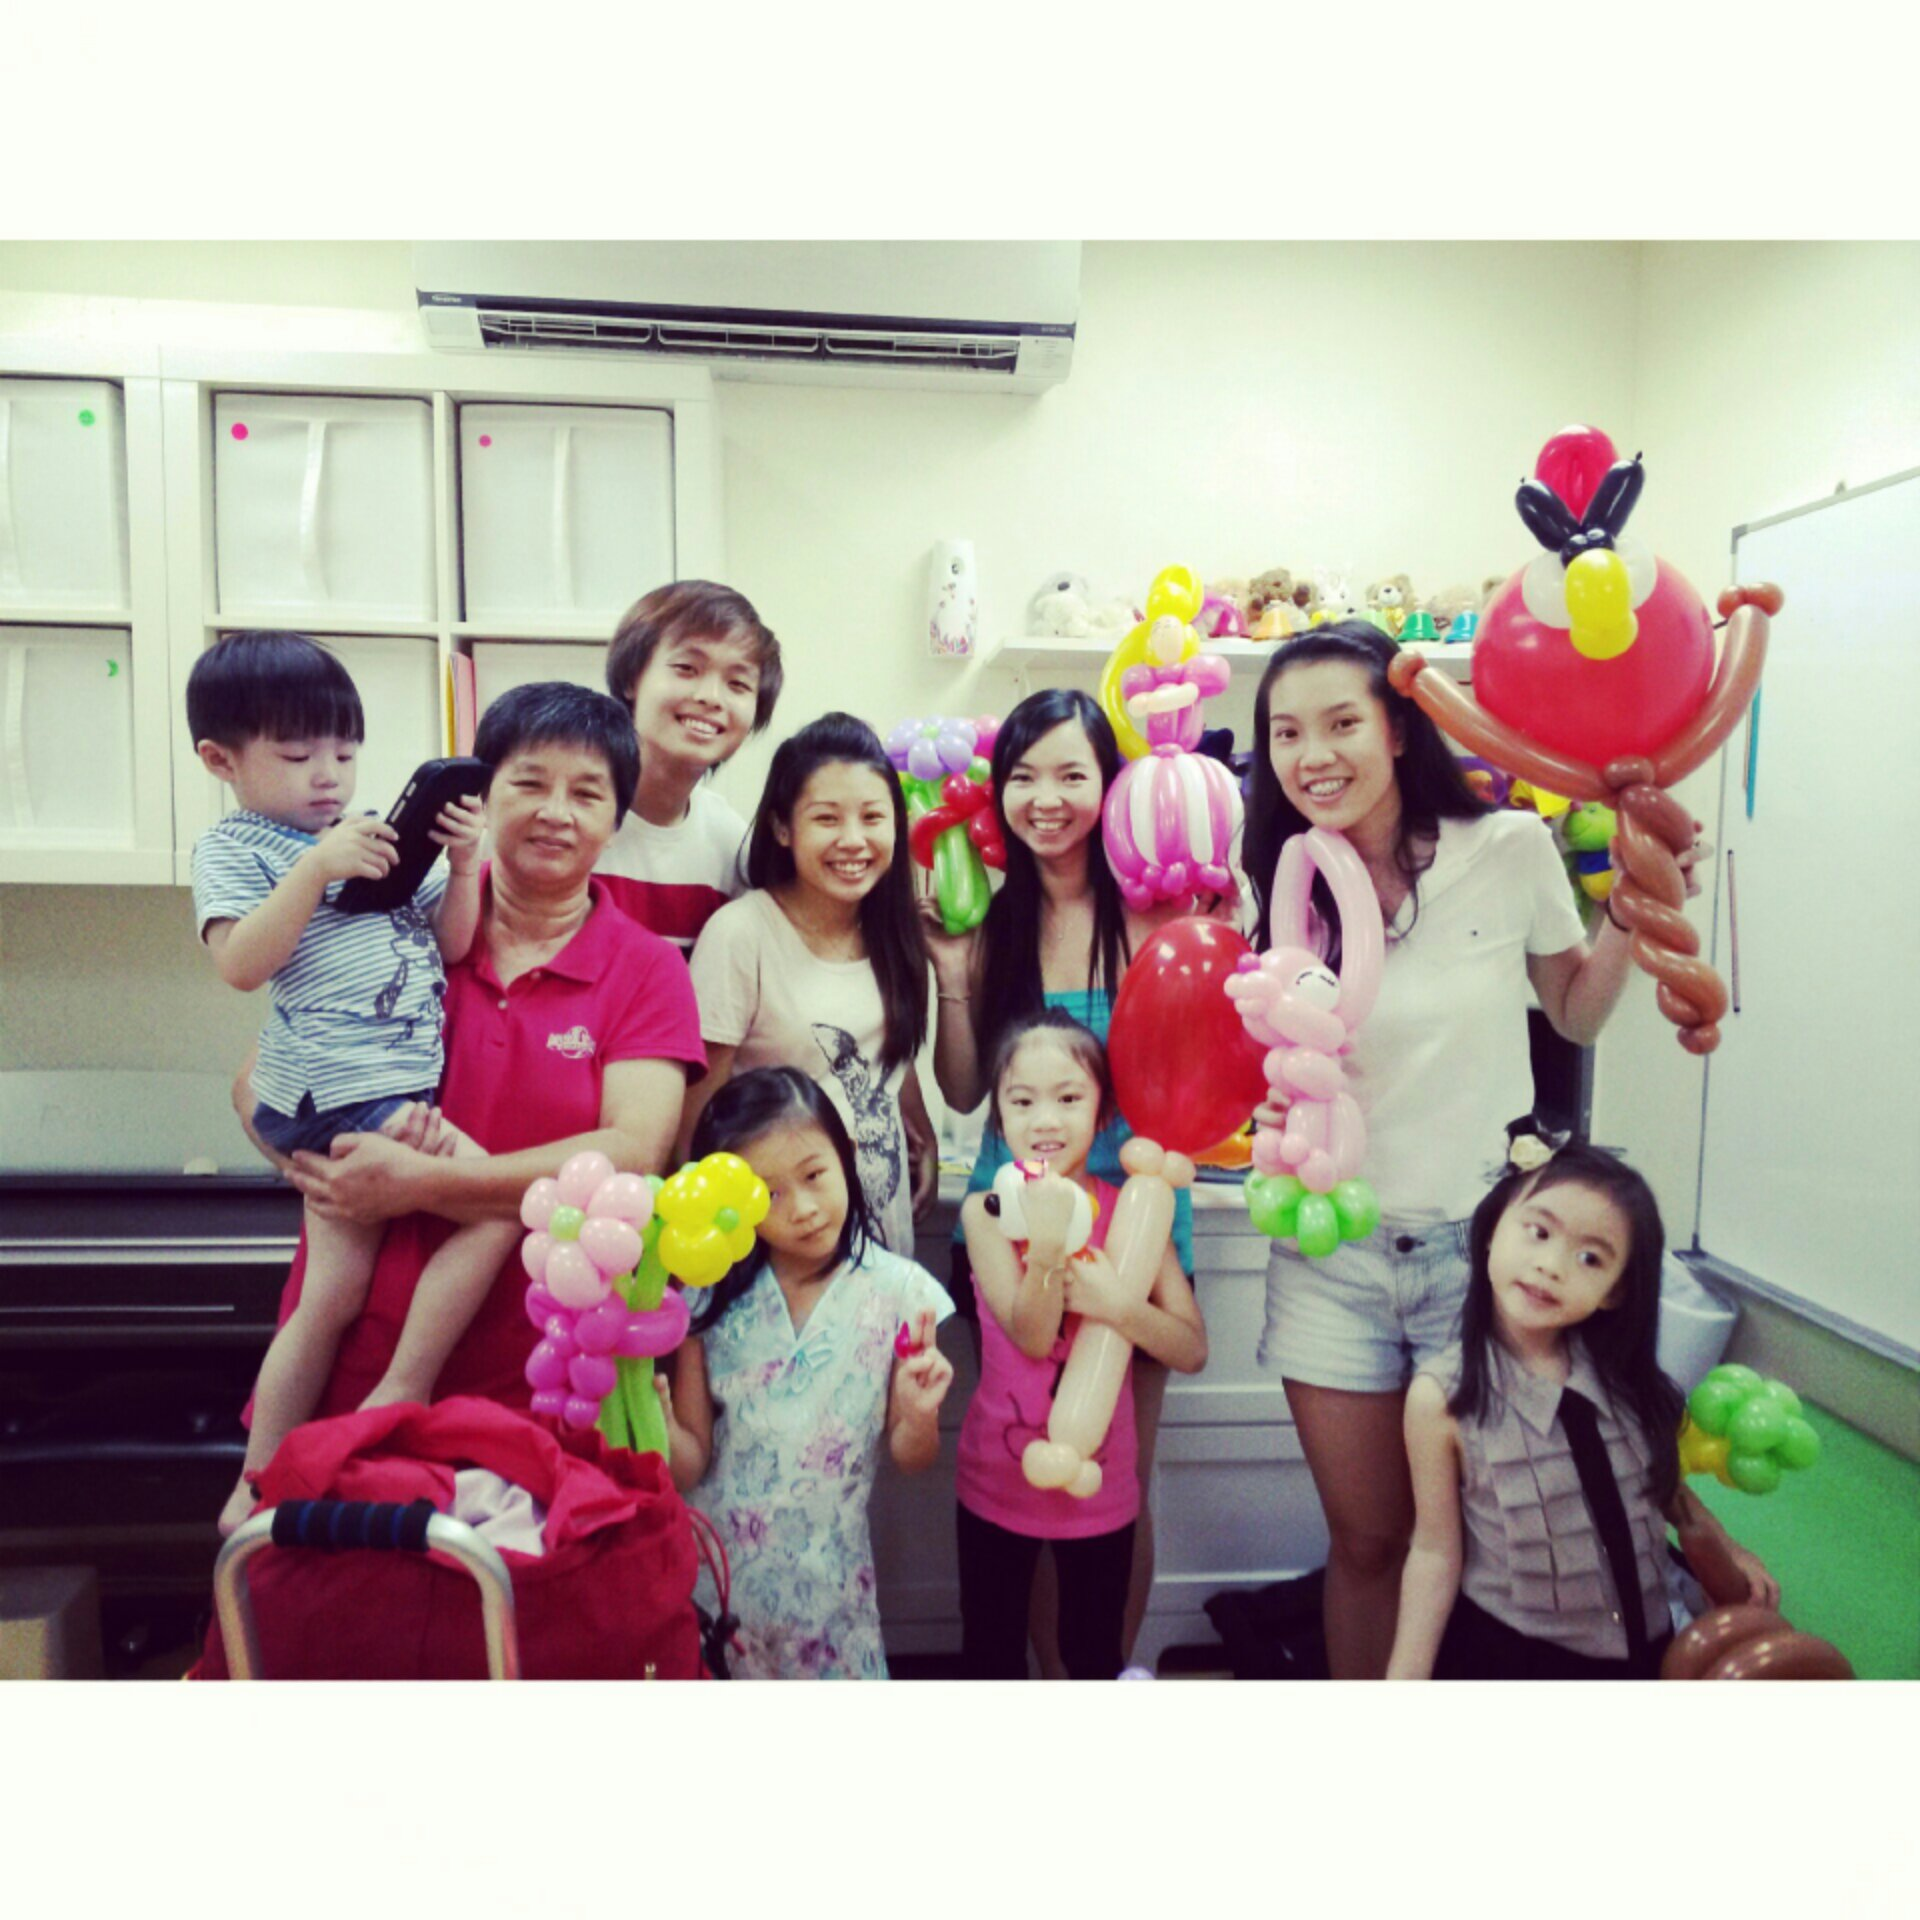 , Balloon sculpting at a local singapore childcare!, Singapore Balloon Decoration Services - Balloon Workshop and Balloon Sculpting